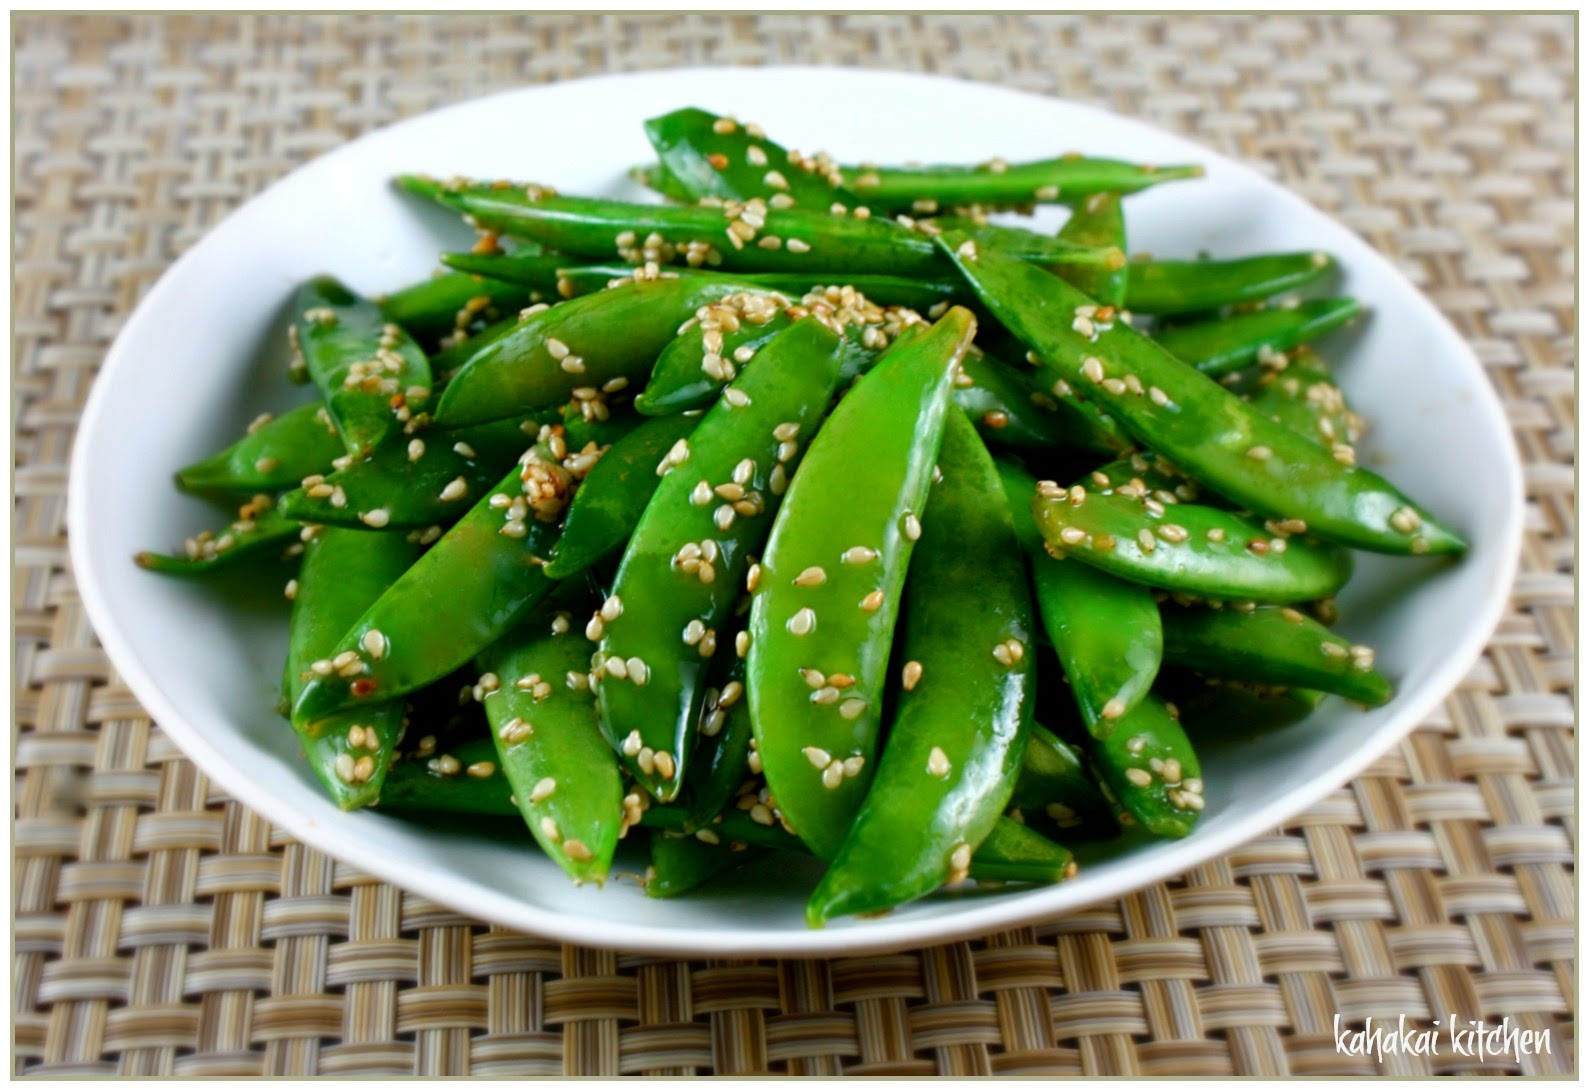 Kahakai Kitchen: Sesame Sugar Snap Peas (A Tasty Pupu ...